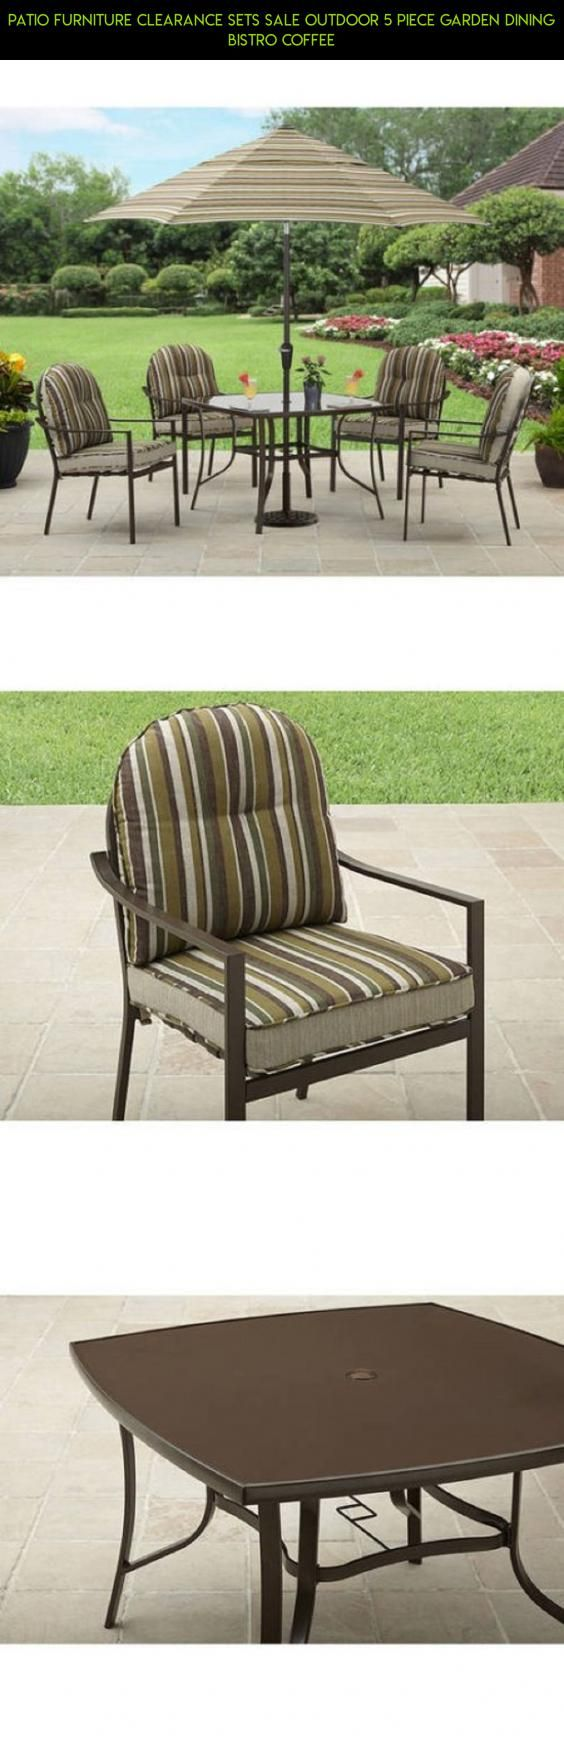 Patio Furniture Clearance Sets Sale Outdoor 5 Piece Garden Dining Bistro  Coffee #clearance #furniture